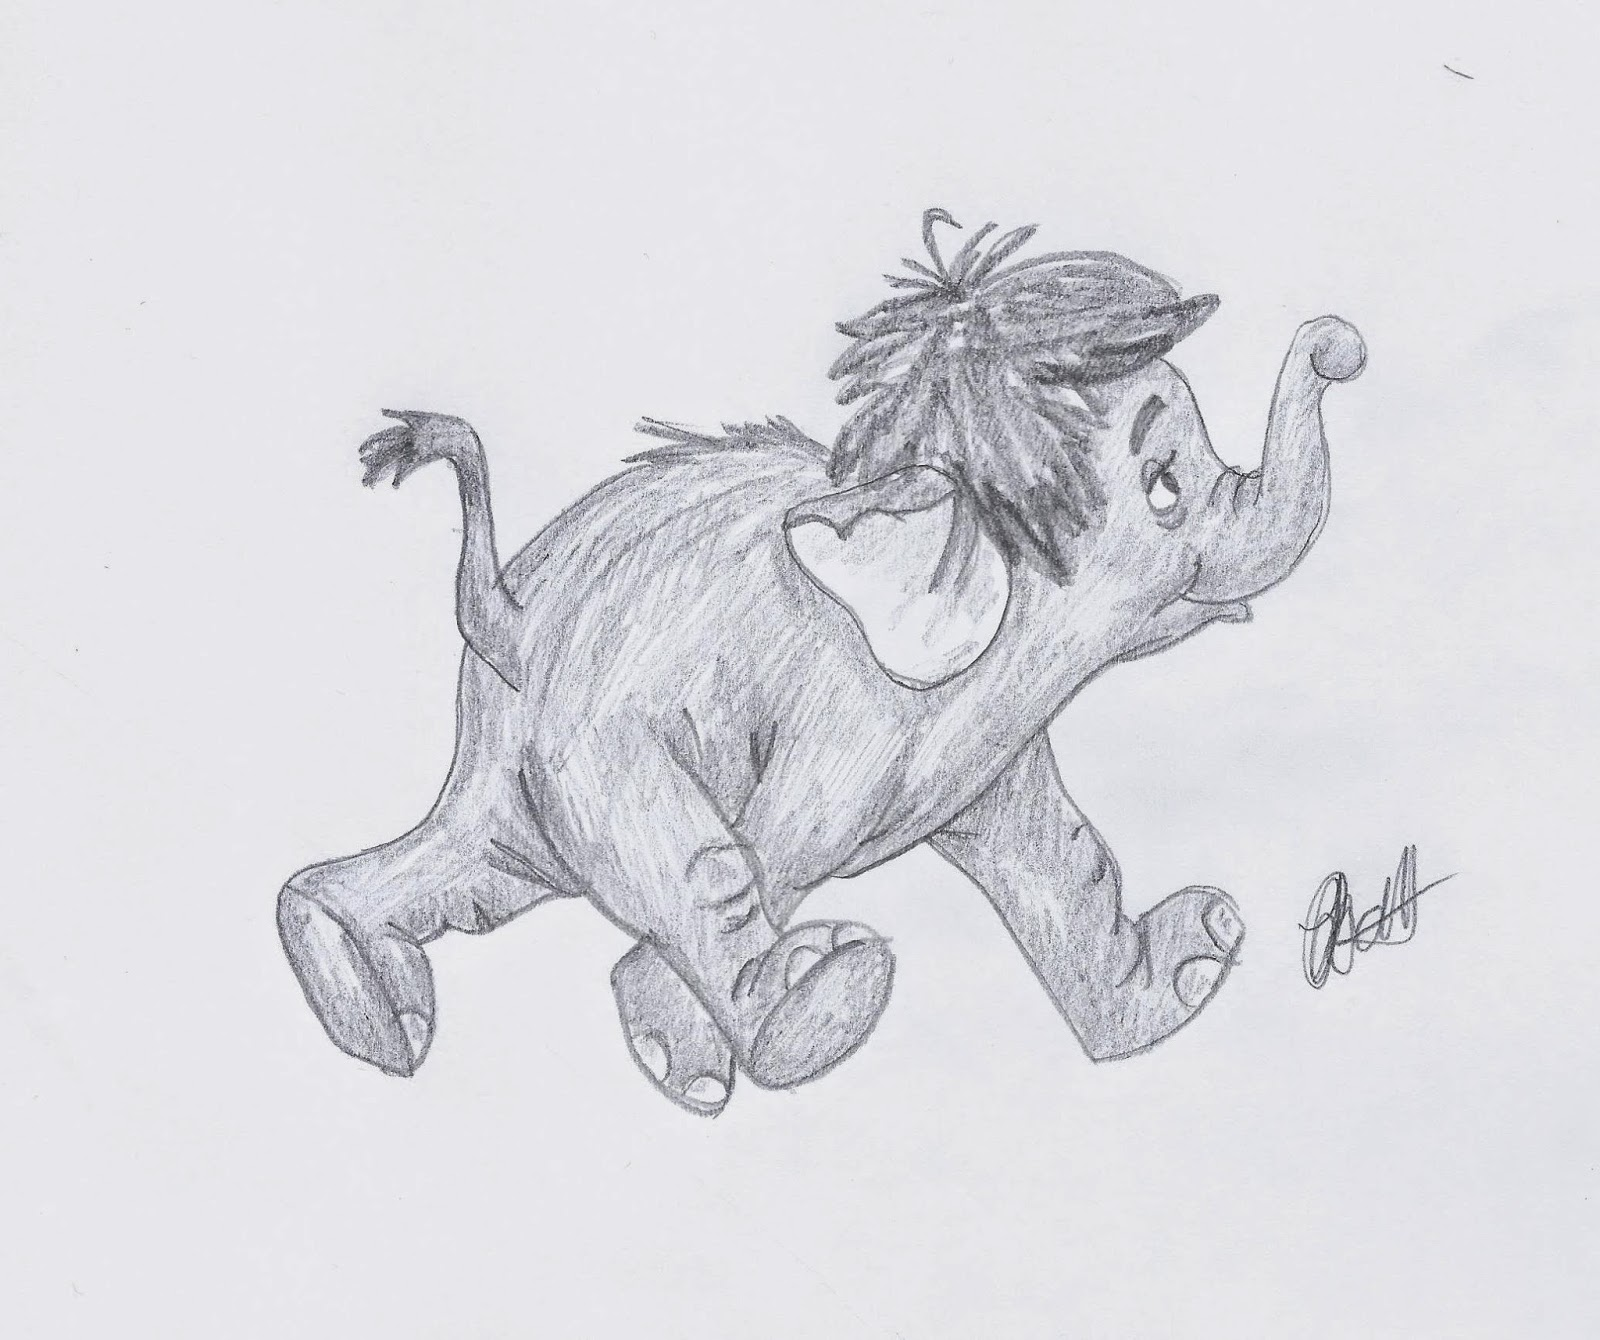 Disney Study: The Jungle Book. Baby elephant #Disney